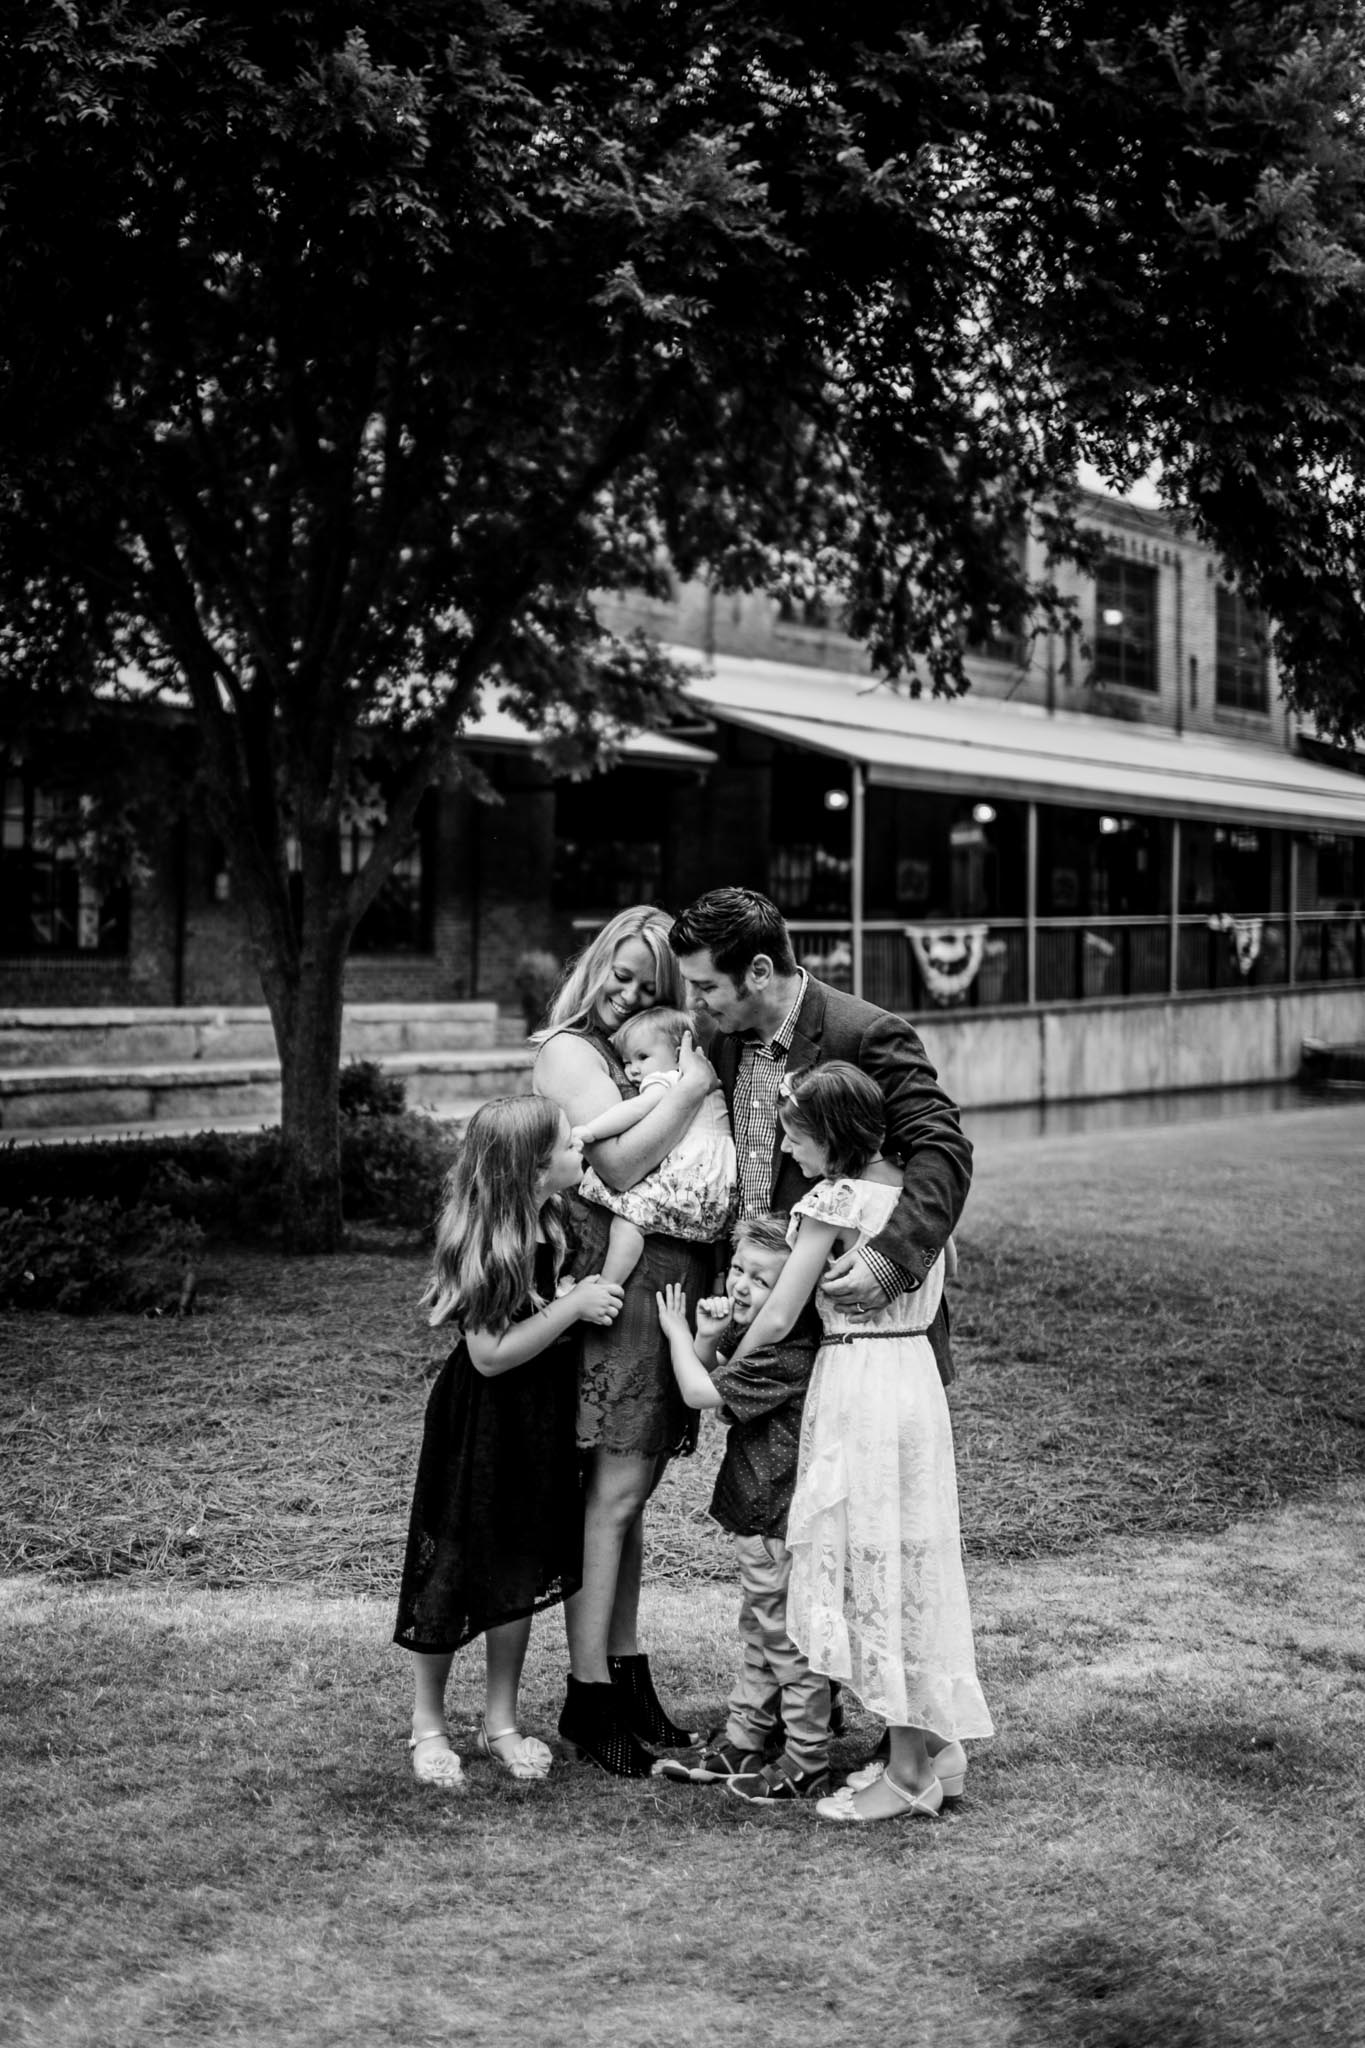 Durham Family Photographer | By G. Lin Photography | Candid black and white portrait of family hugging together